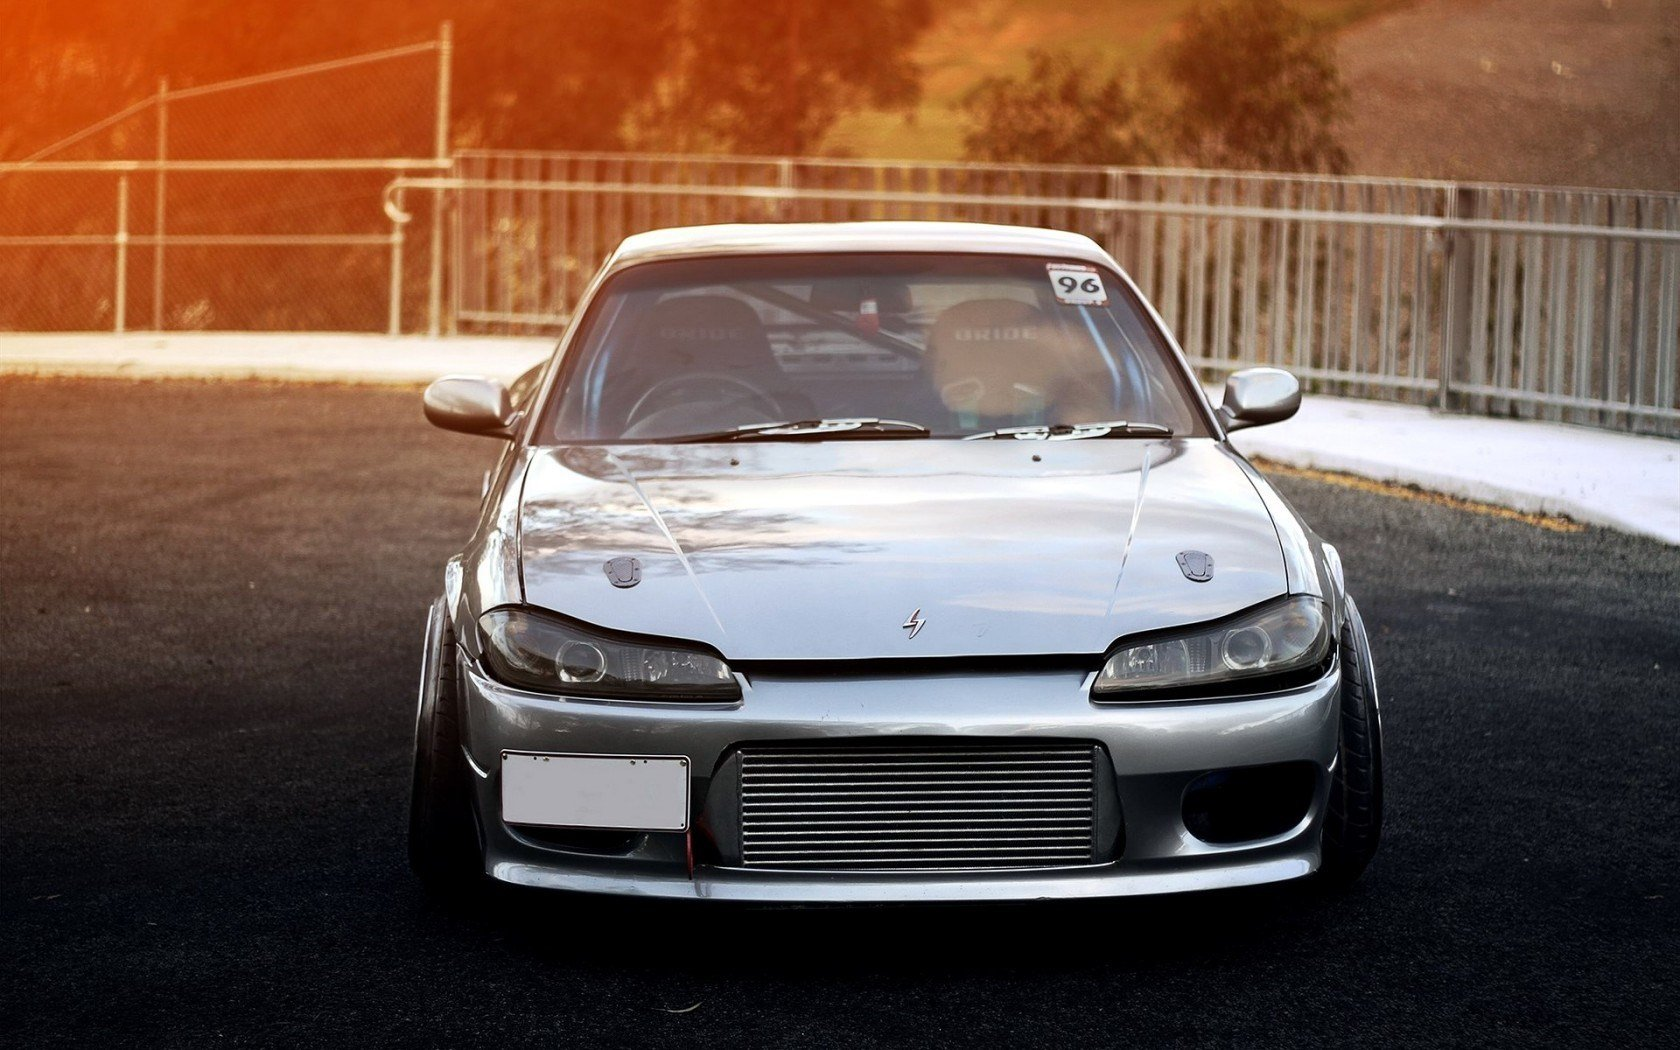 Nissan Silvia S15 Wallpapers Hd For Desktop Backgrounds